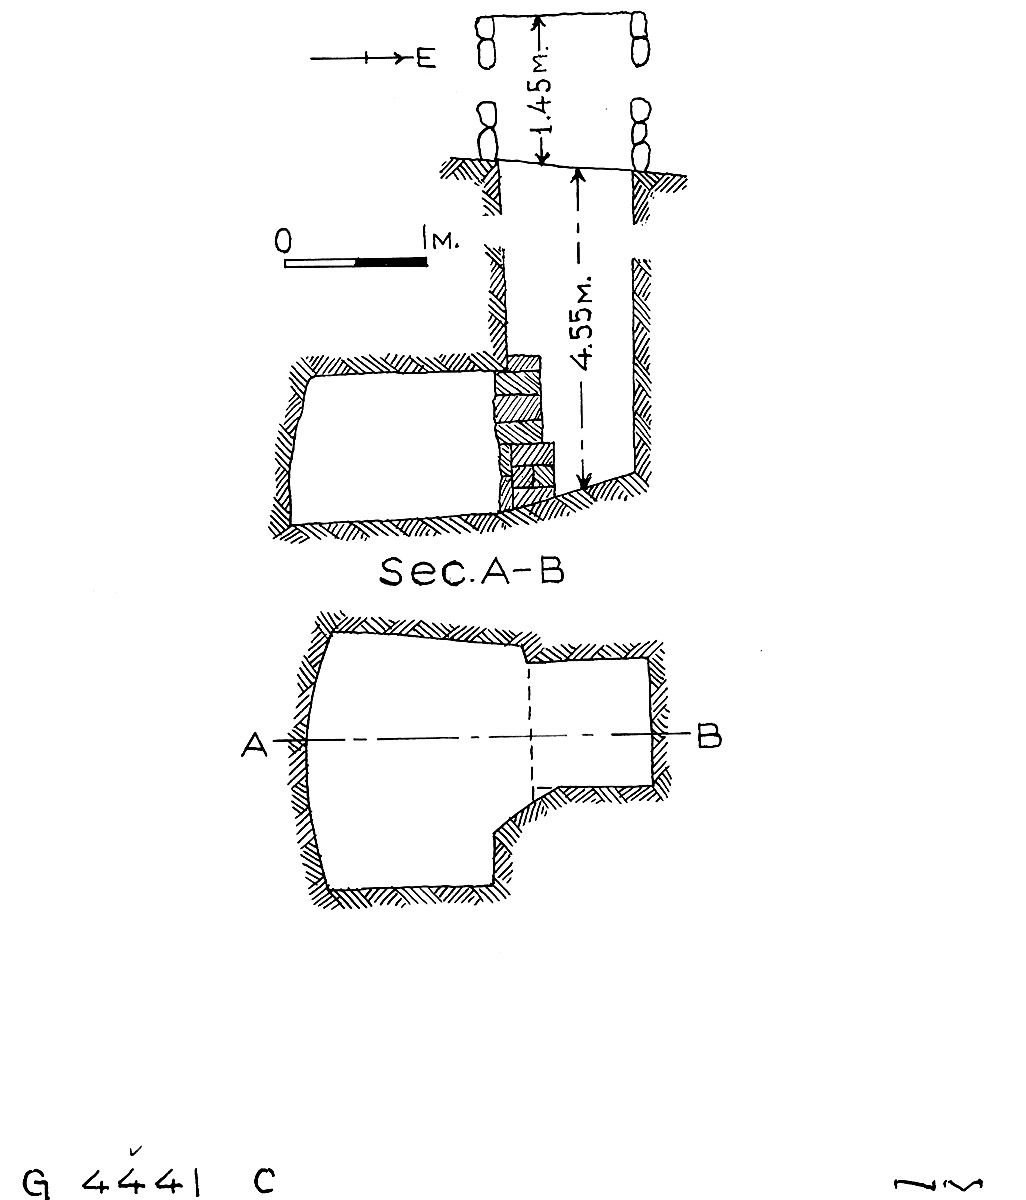 Maps and plans: G 4441, Shaft C